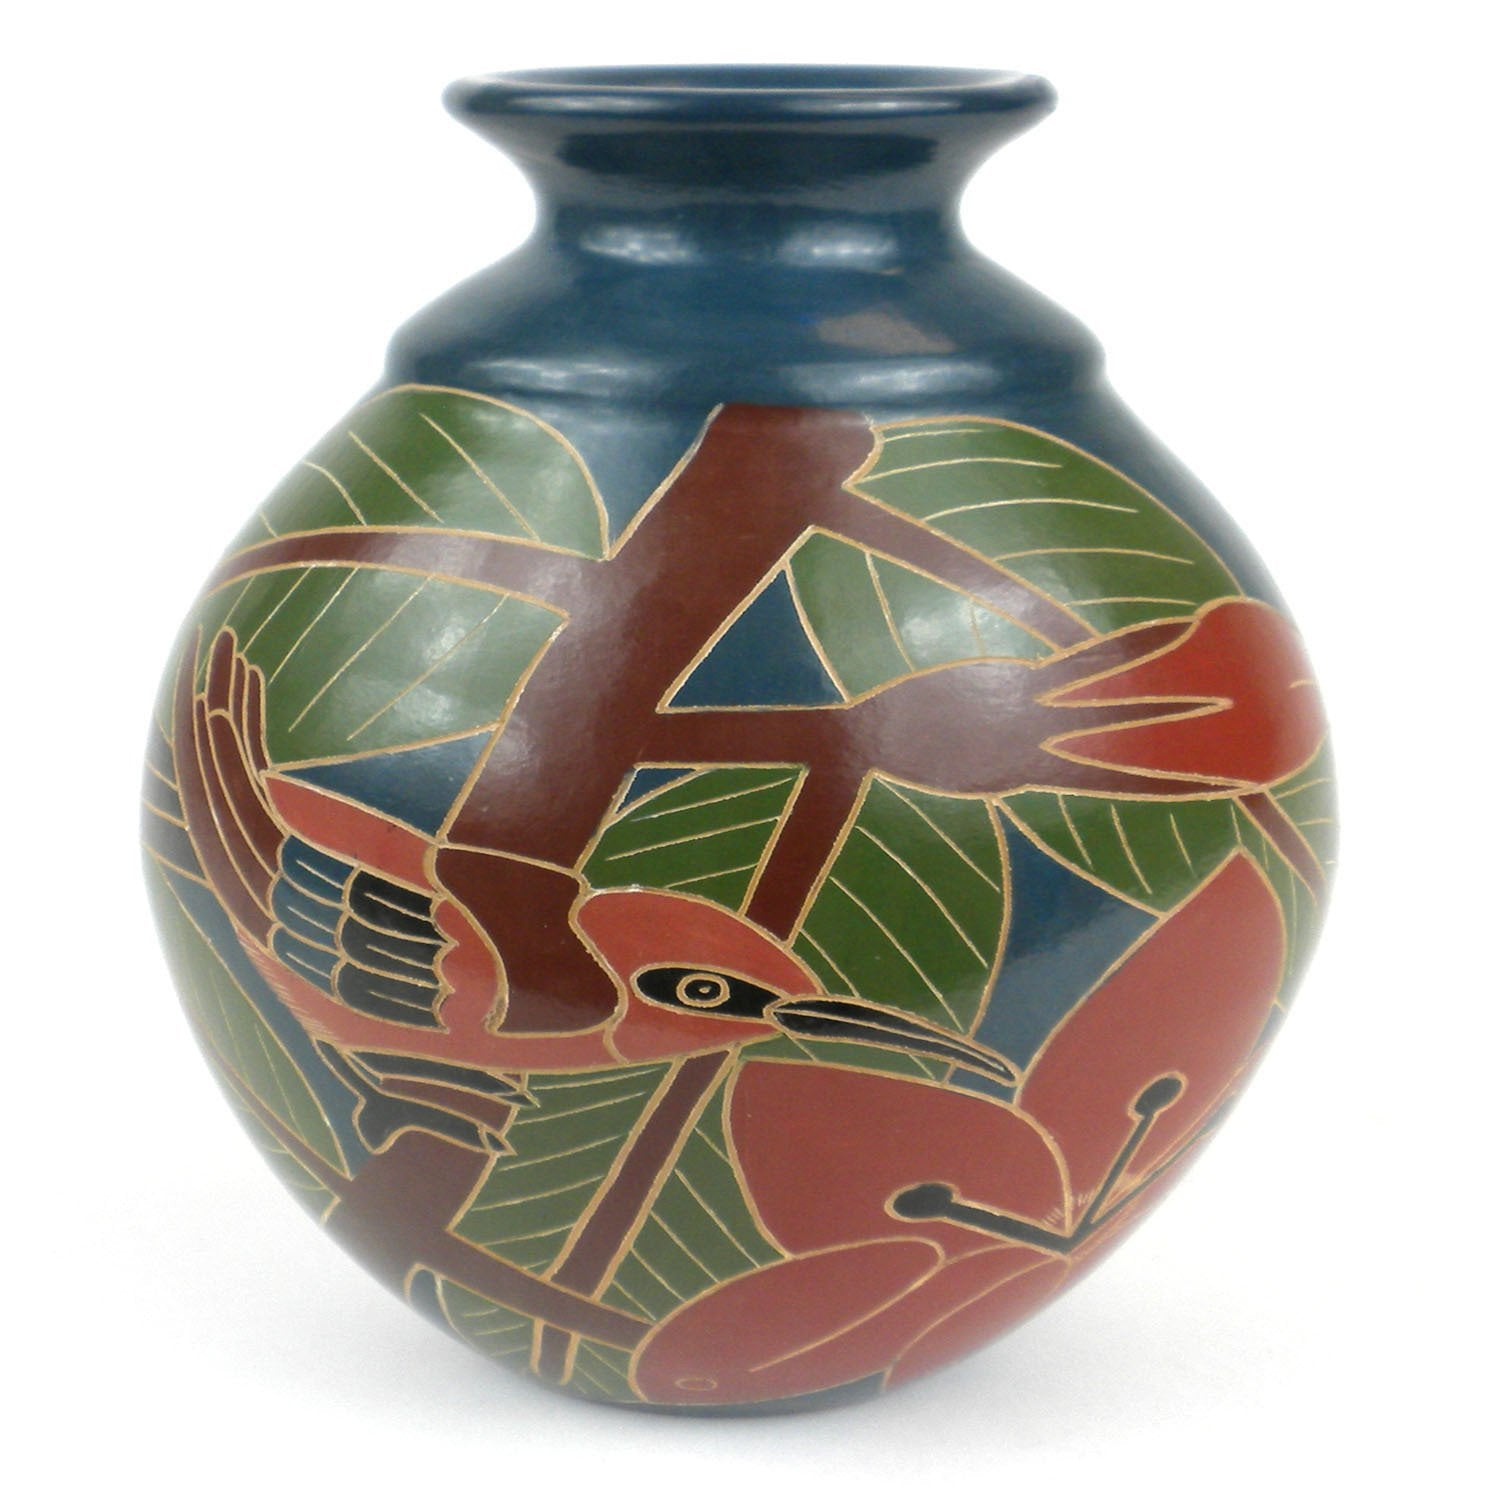 8 inch Tall Vase - Red Bird